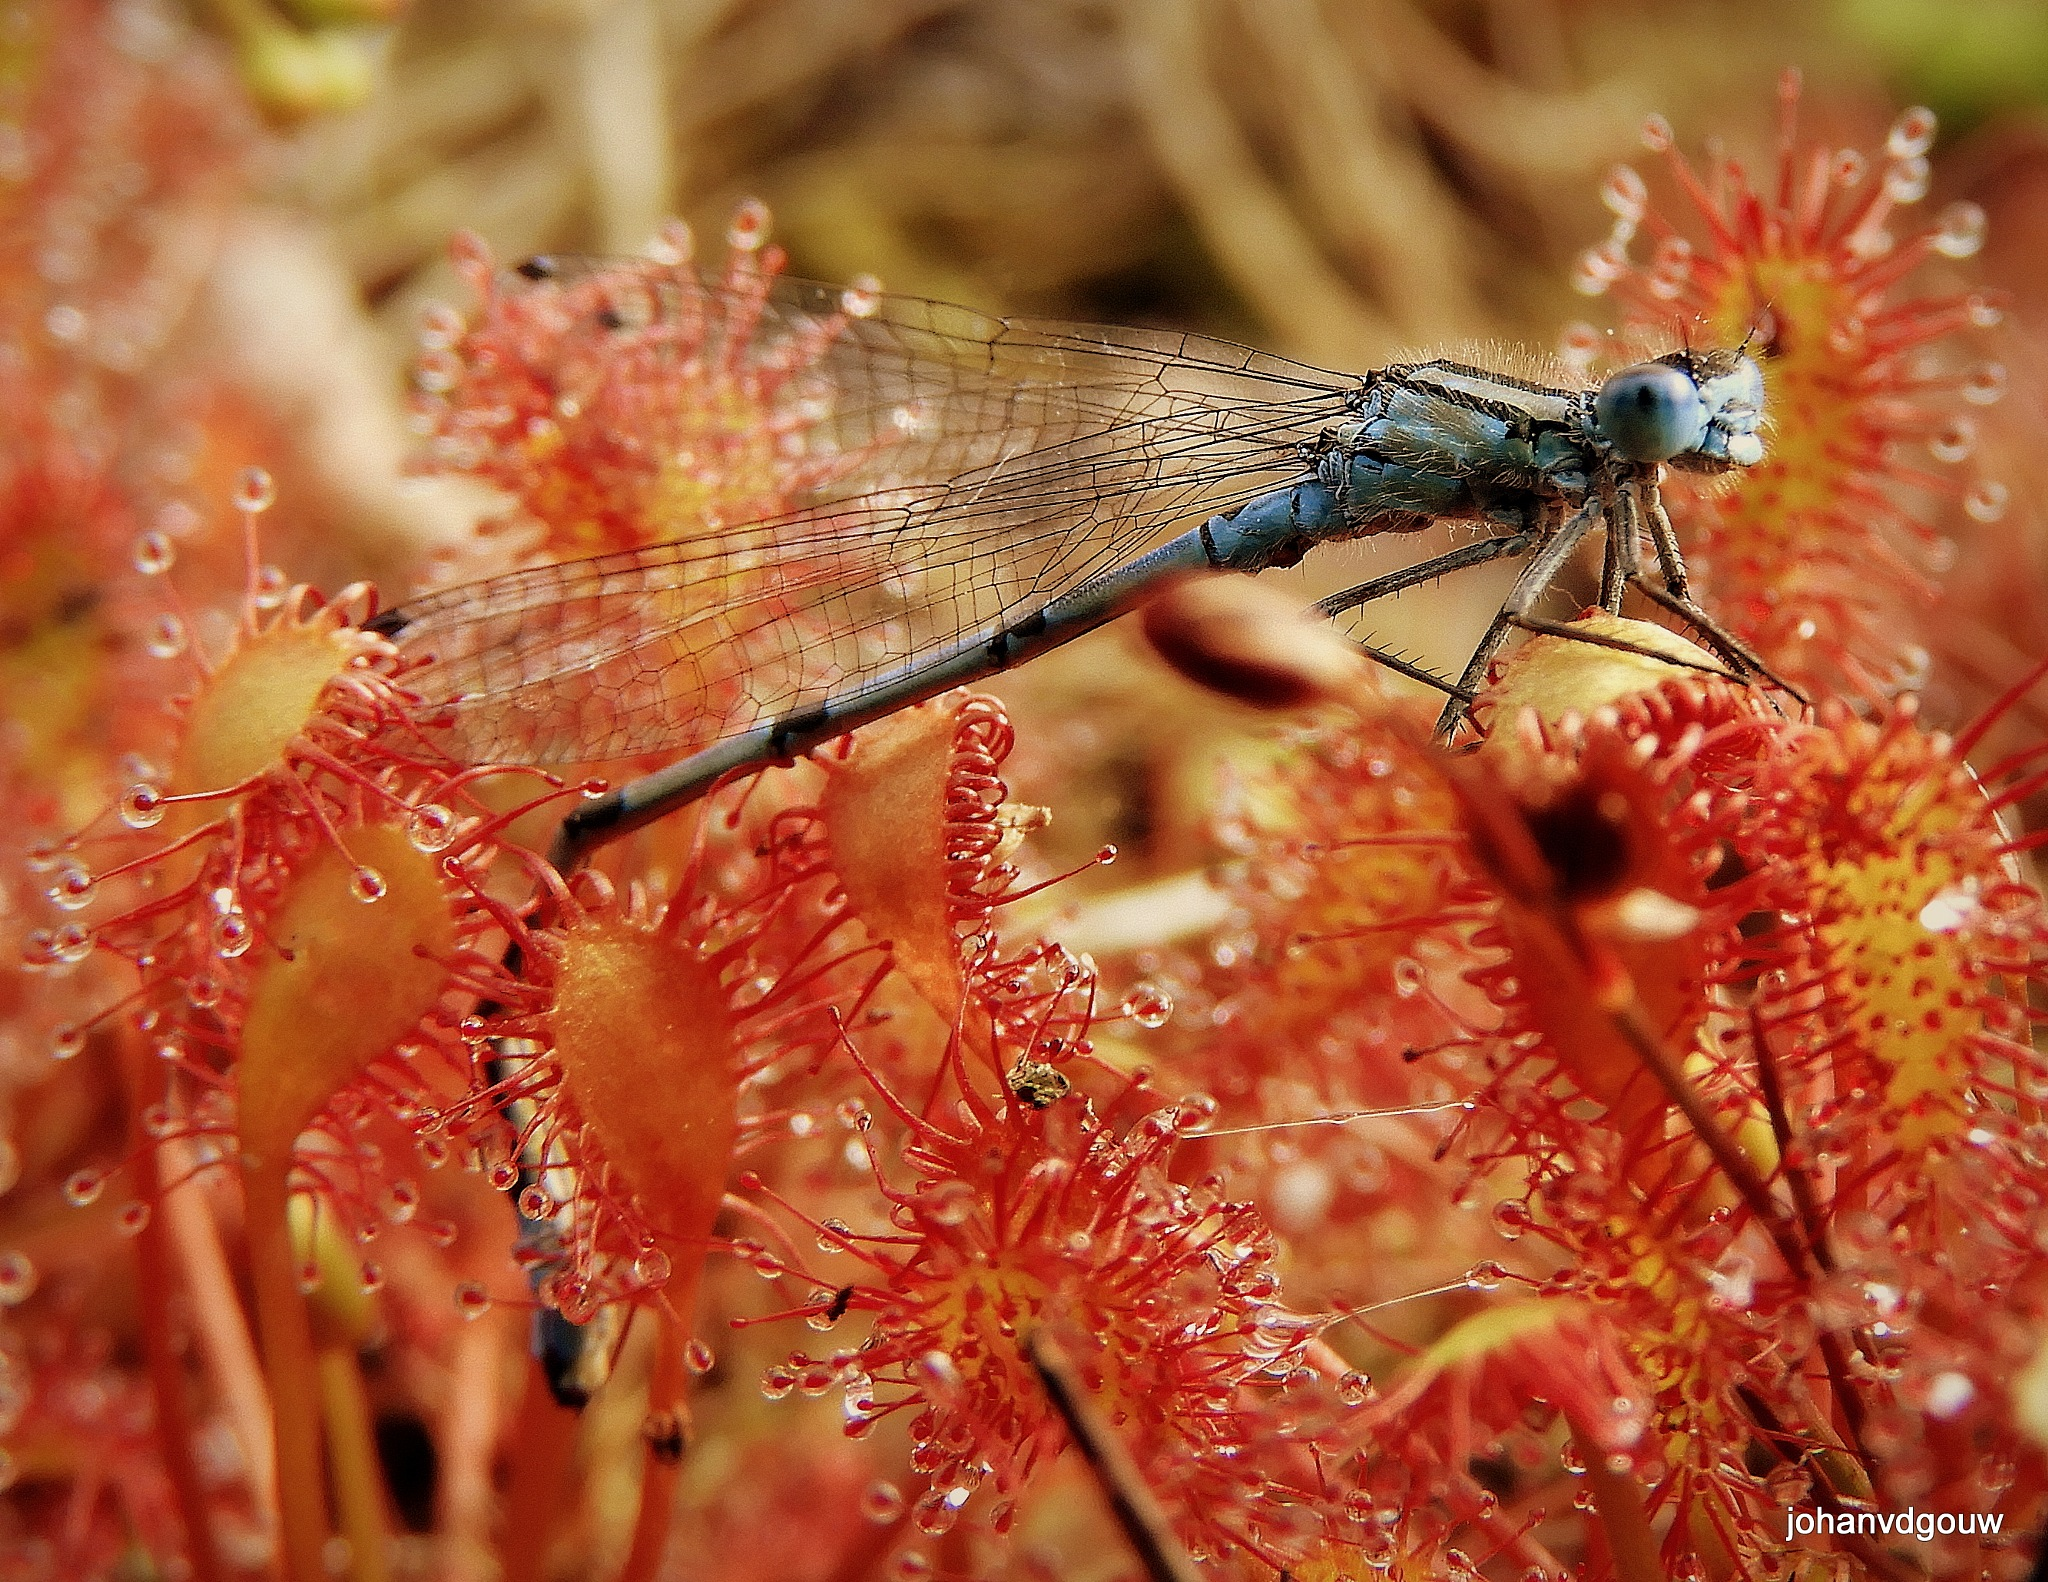 Dragonfly caught by the sundew 1 by johan.vandergouw